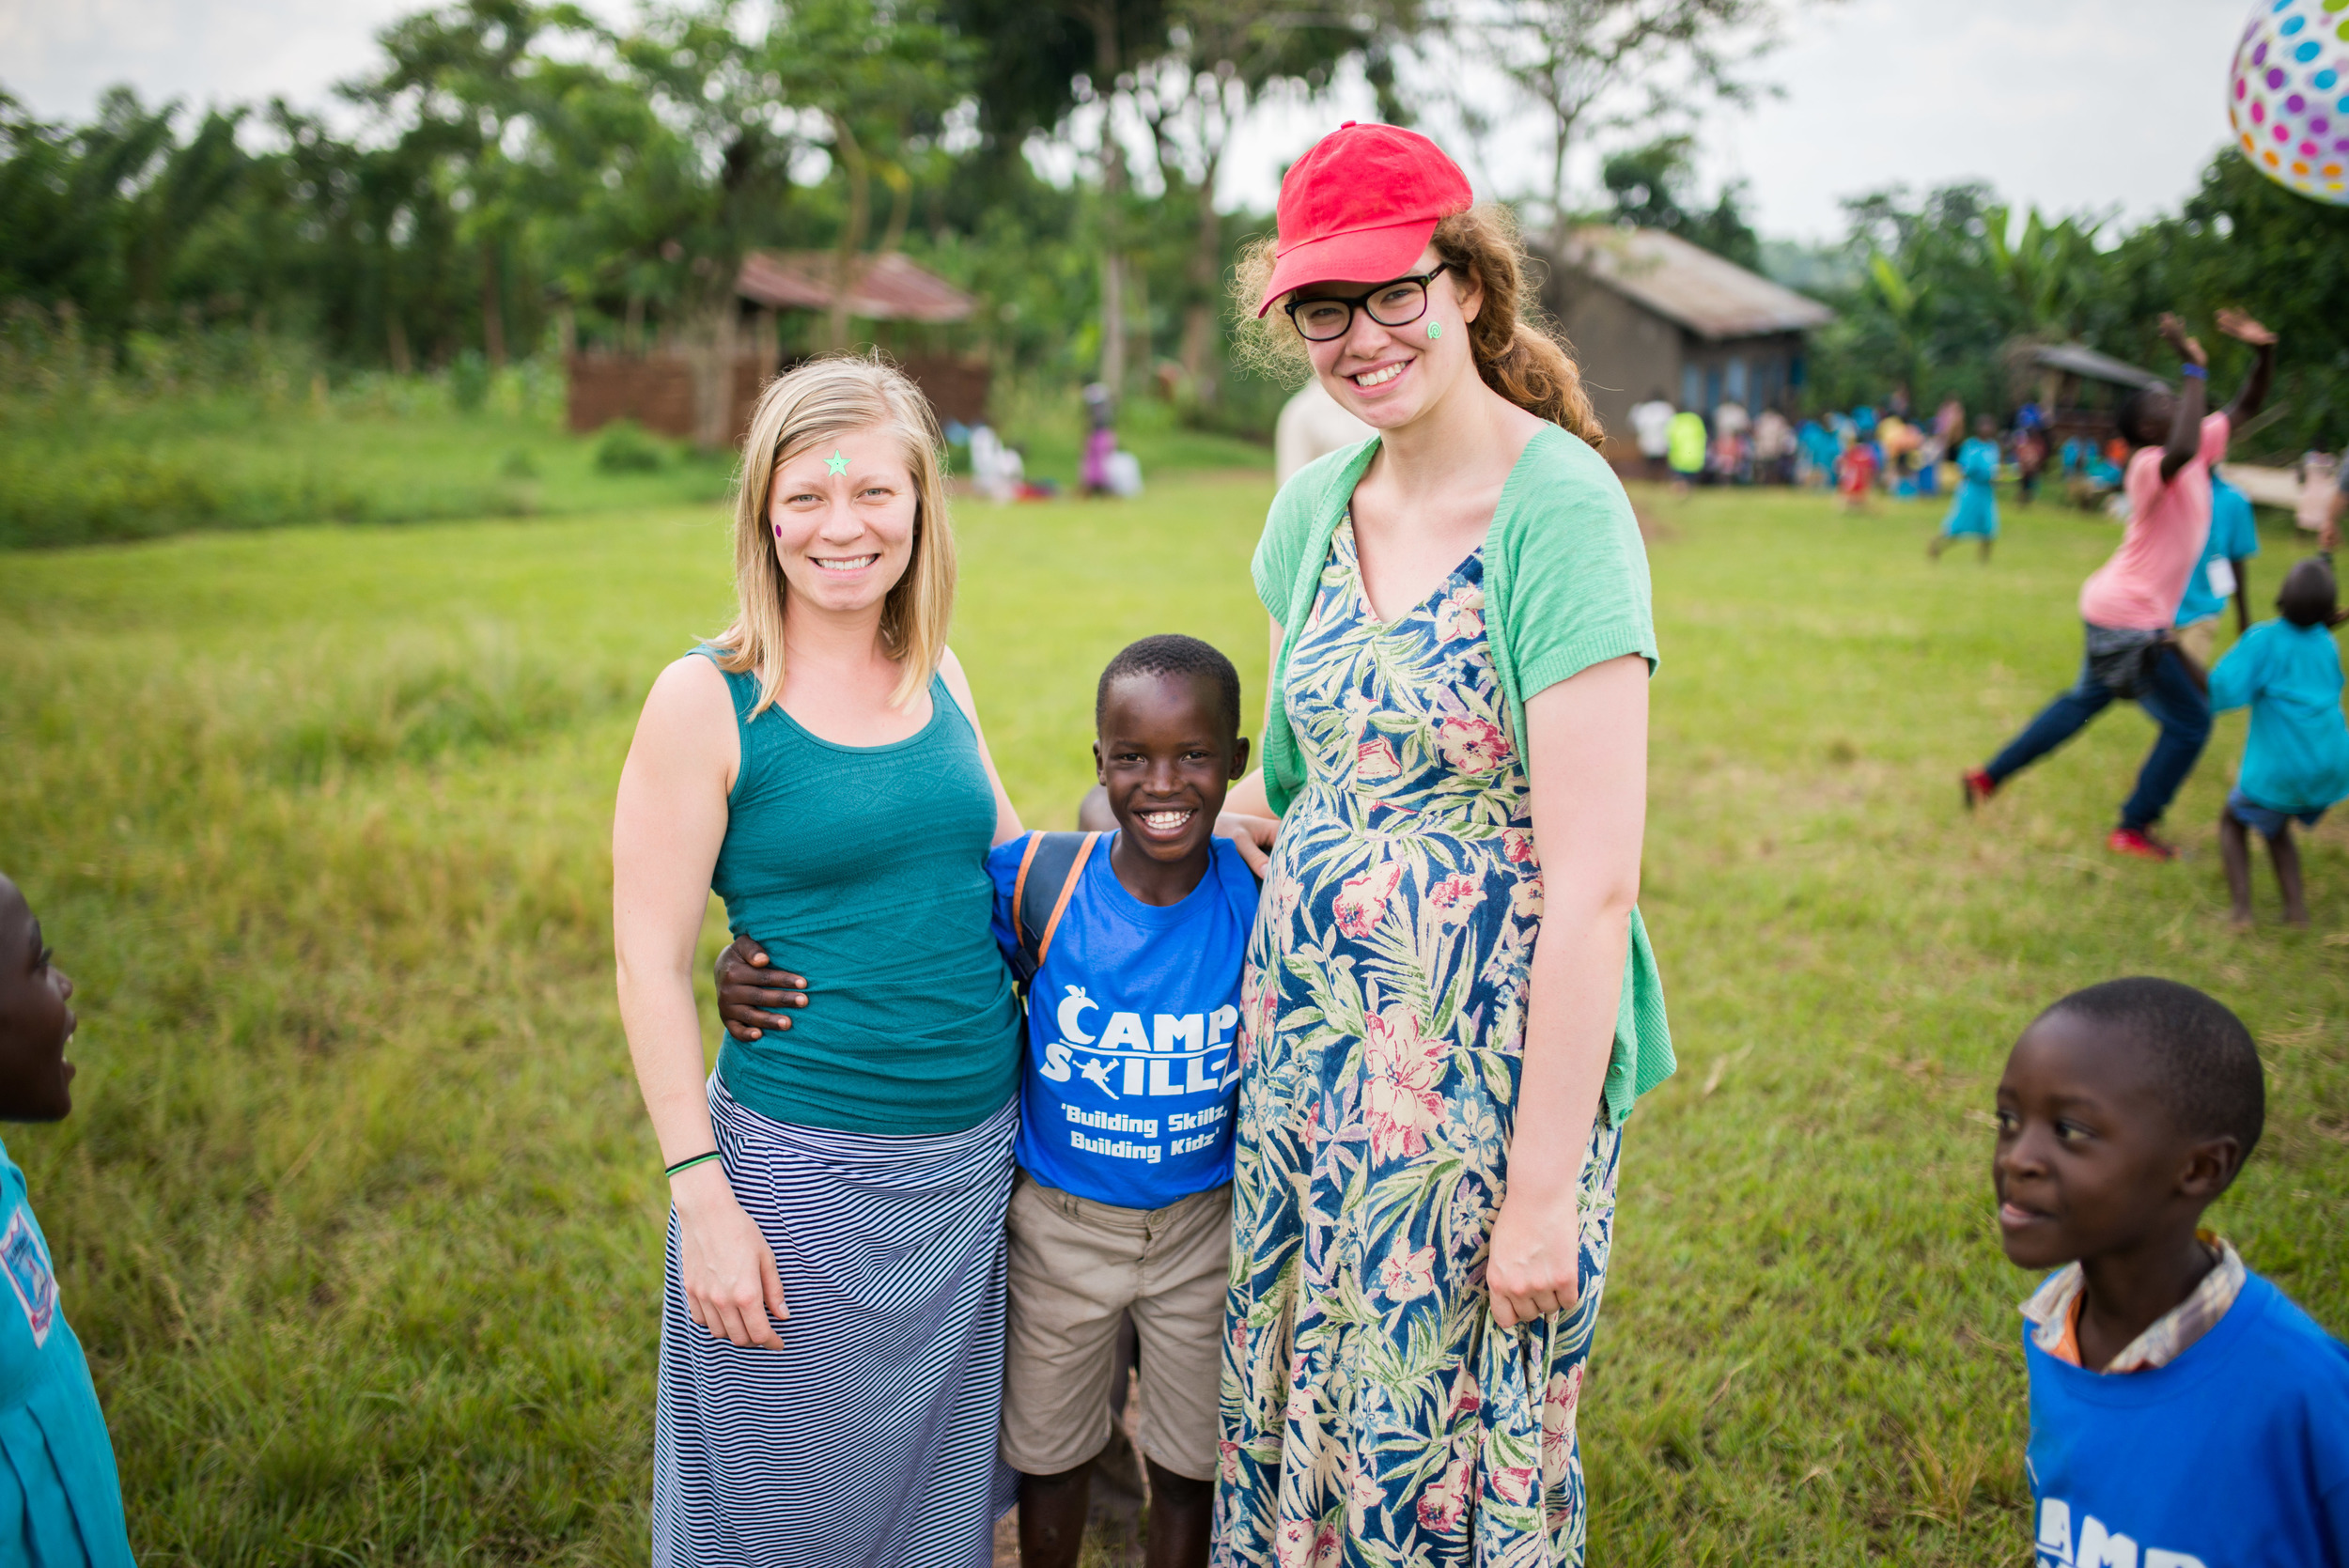 The mark of a successful camp: smiles everywhere! Christina Fowler and Kara Hadley are two immersion trip participants and counselors at the camp.